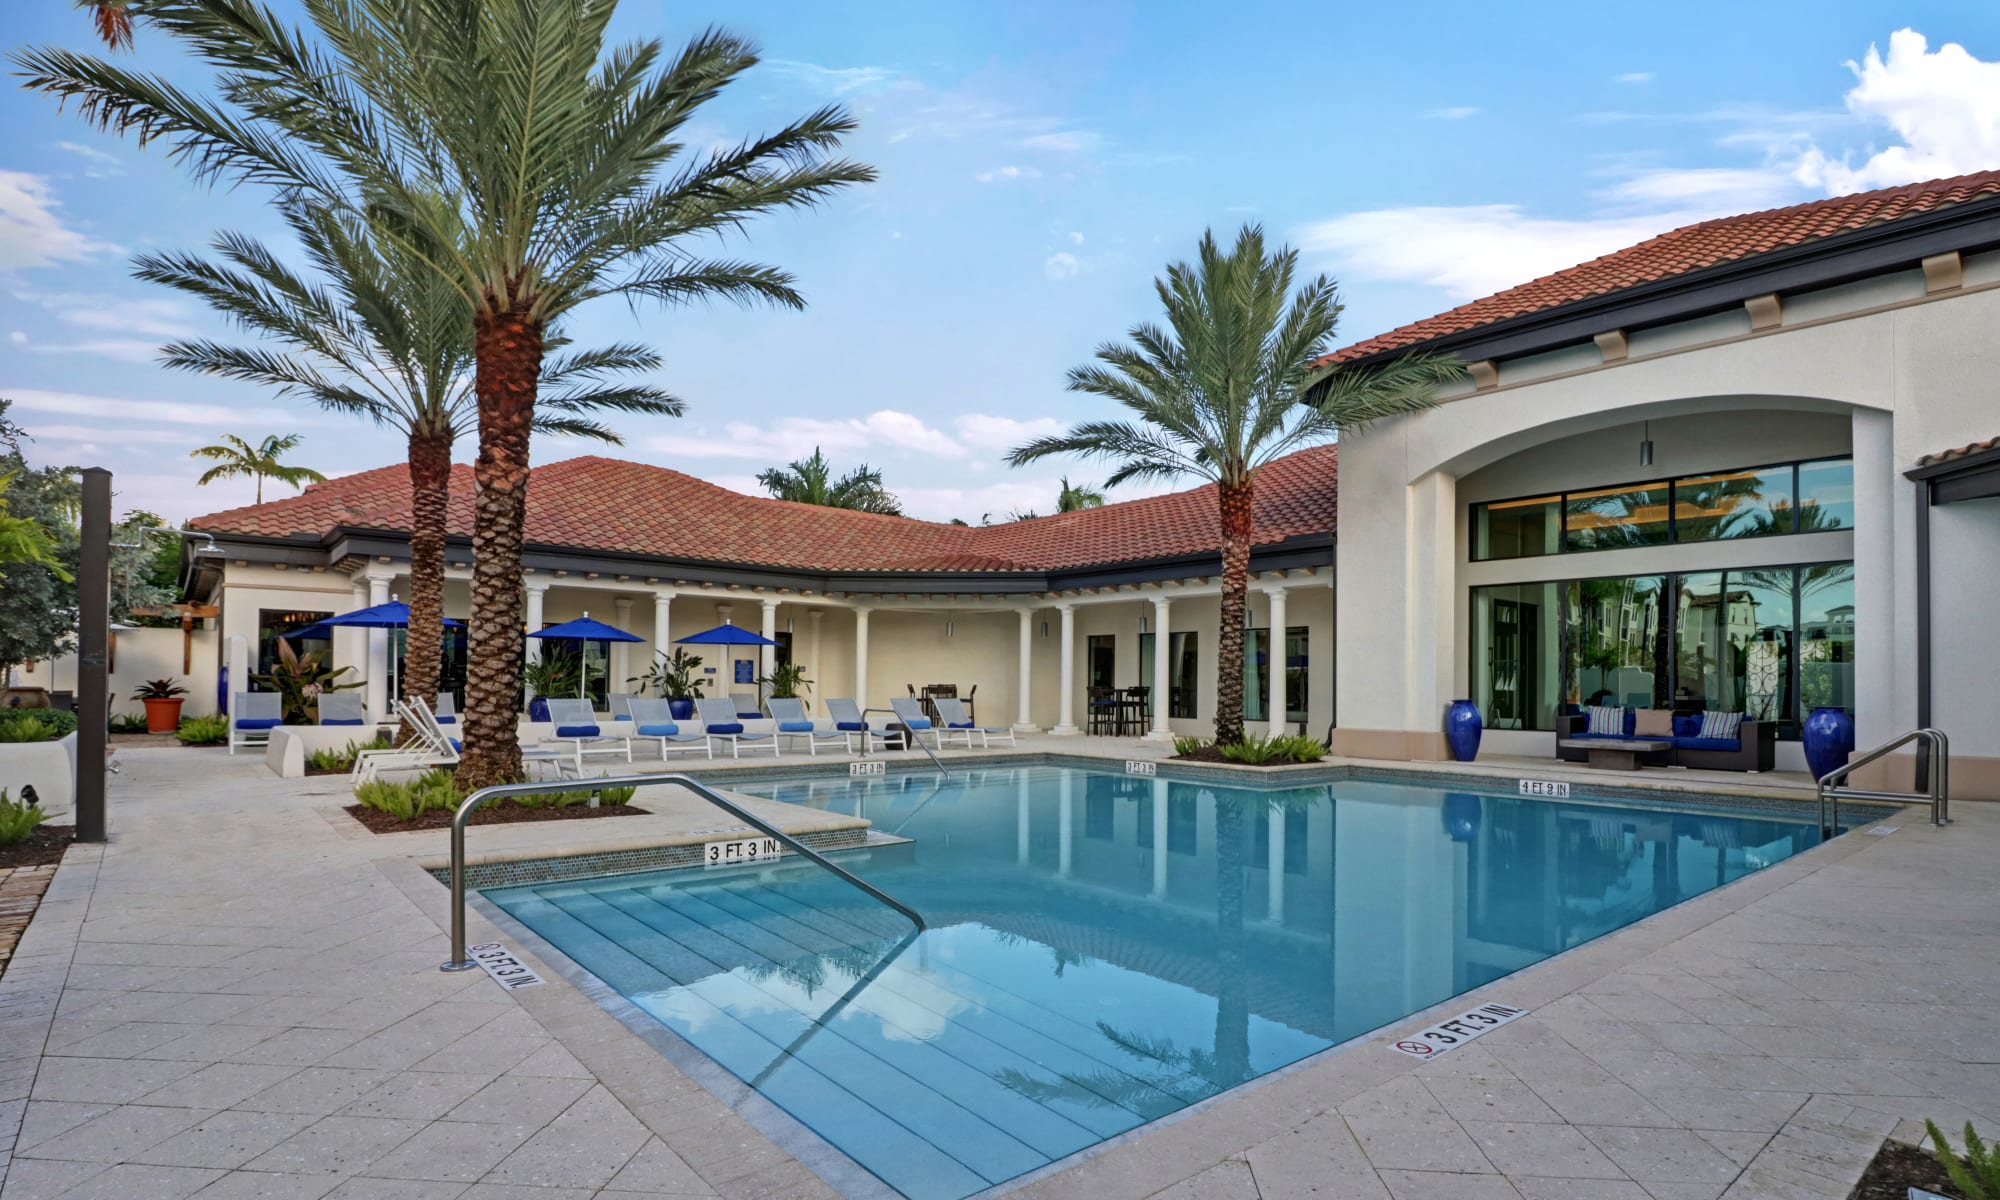 Apartments at Linden Pointe in Pompano Beach, Florida